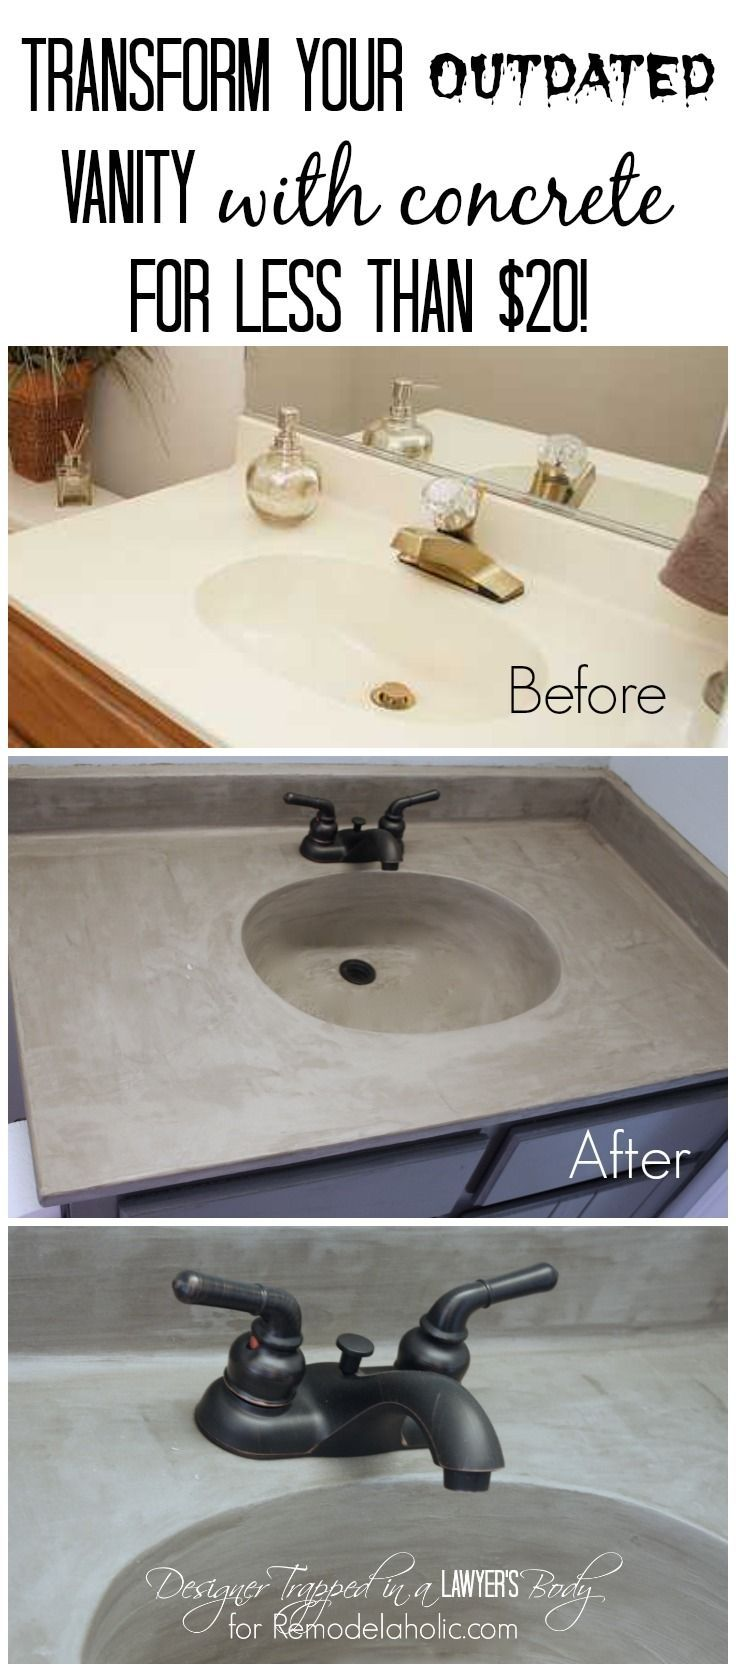 Painting Cultured Marble Sink Best 10 Refinish Countertops Ideas On Pinterest Cheap Granite